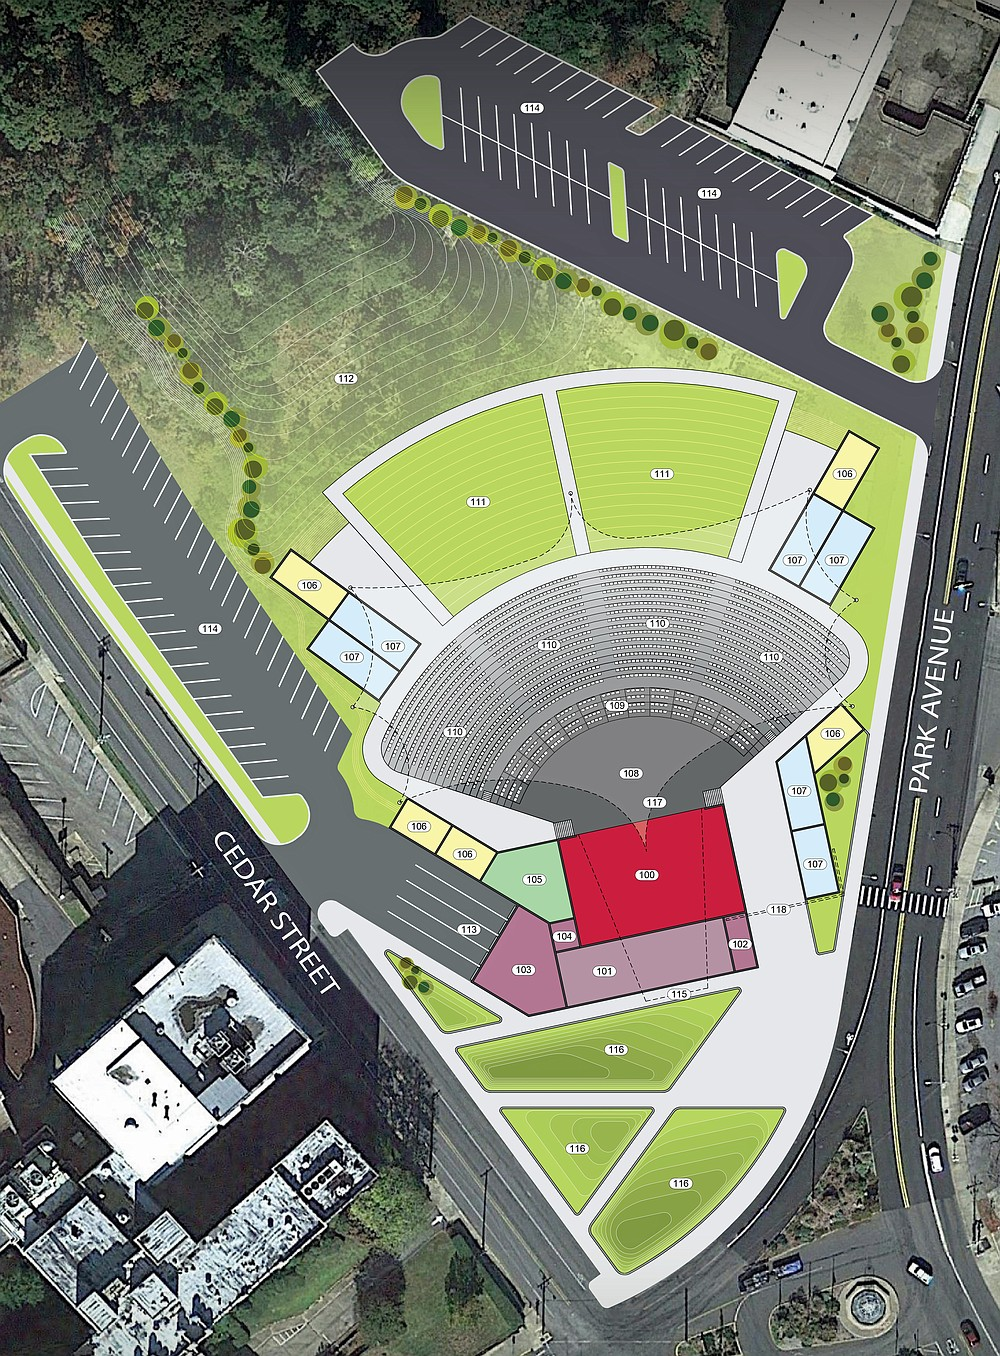 The site plan concept for The Majestic, the outdoor entertainment venue proposed for the Majestic Hotel site, was presented to the Hot Springs Board of Directors Tuesday. - Submitted photo